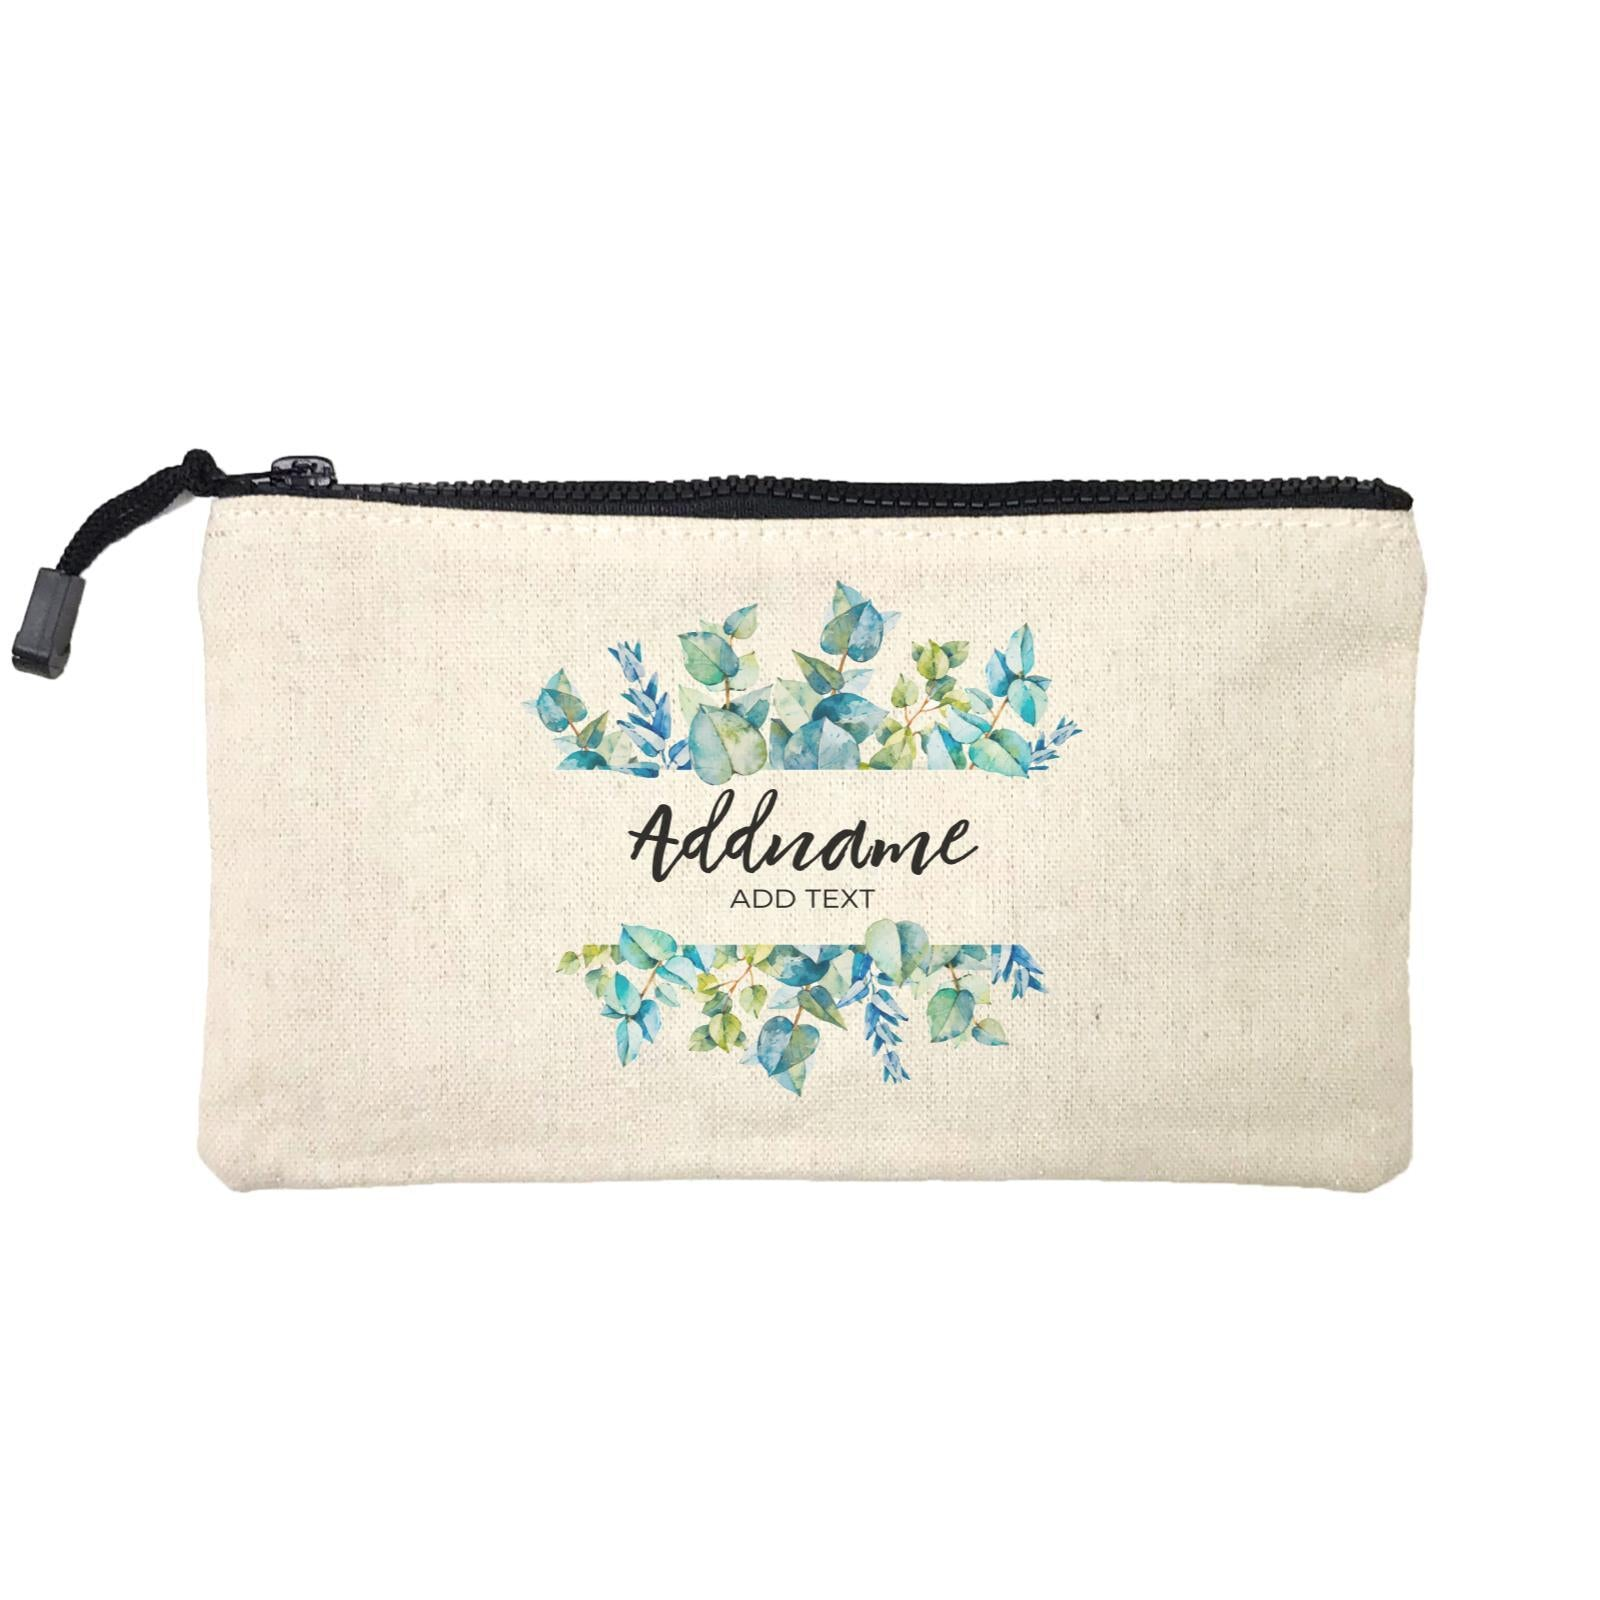 Add Your Own Text Teacher Blue Leaves Box Addname And Add Text Mini Accessories Stationery Pouch